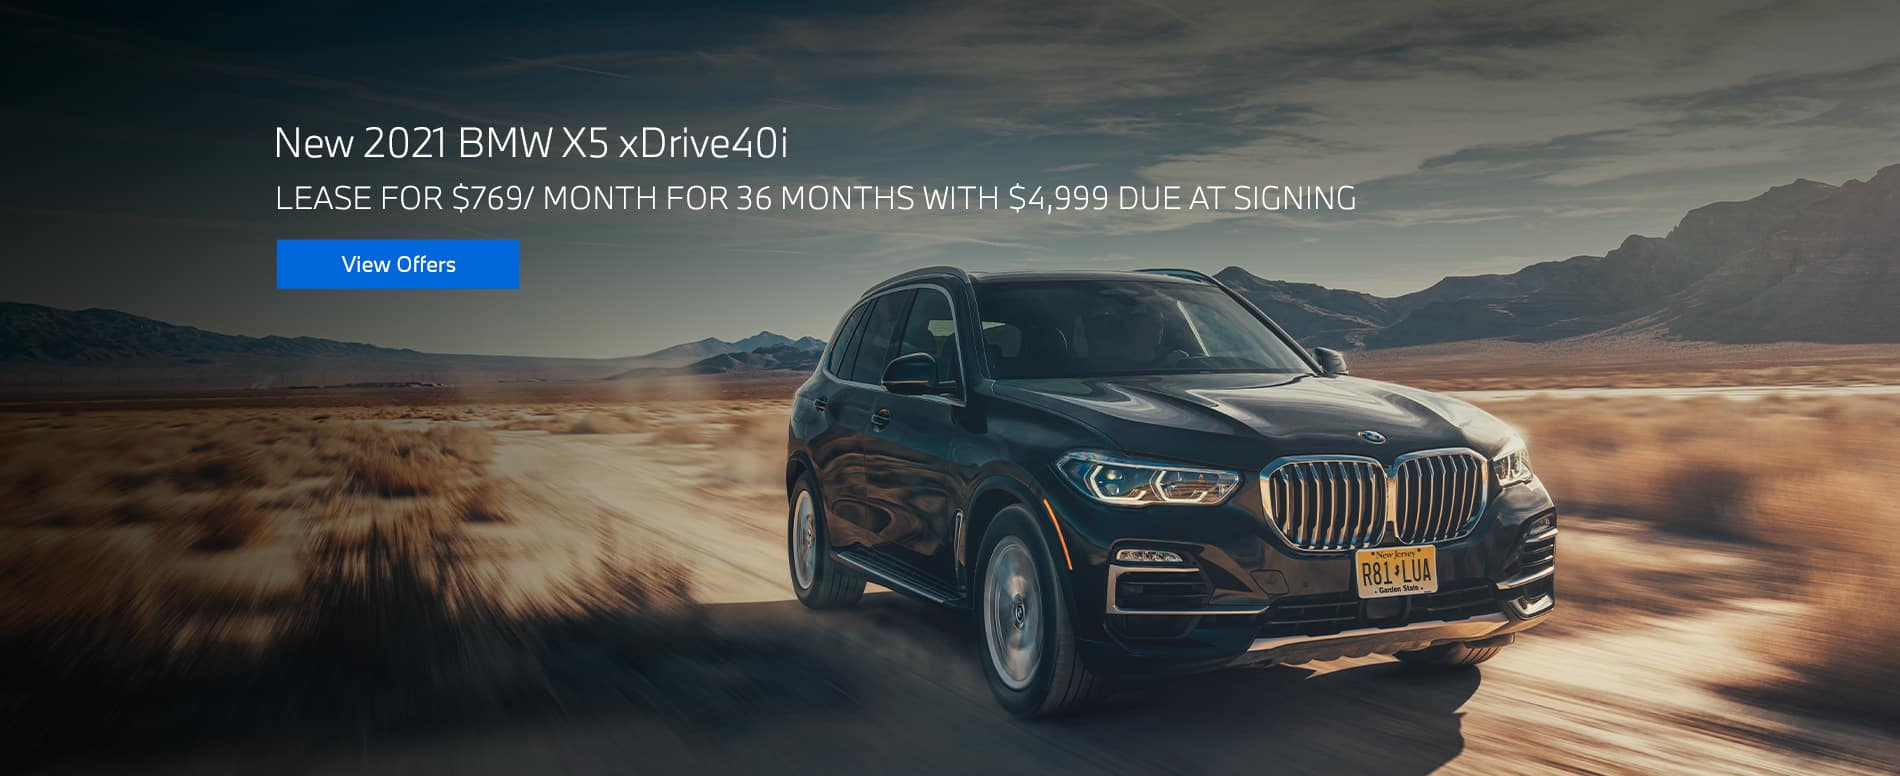 New 2021 BMW X5 xDrive40i $769/mo. for 36 months $4,999 due at signing